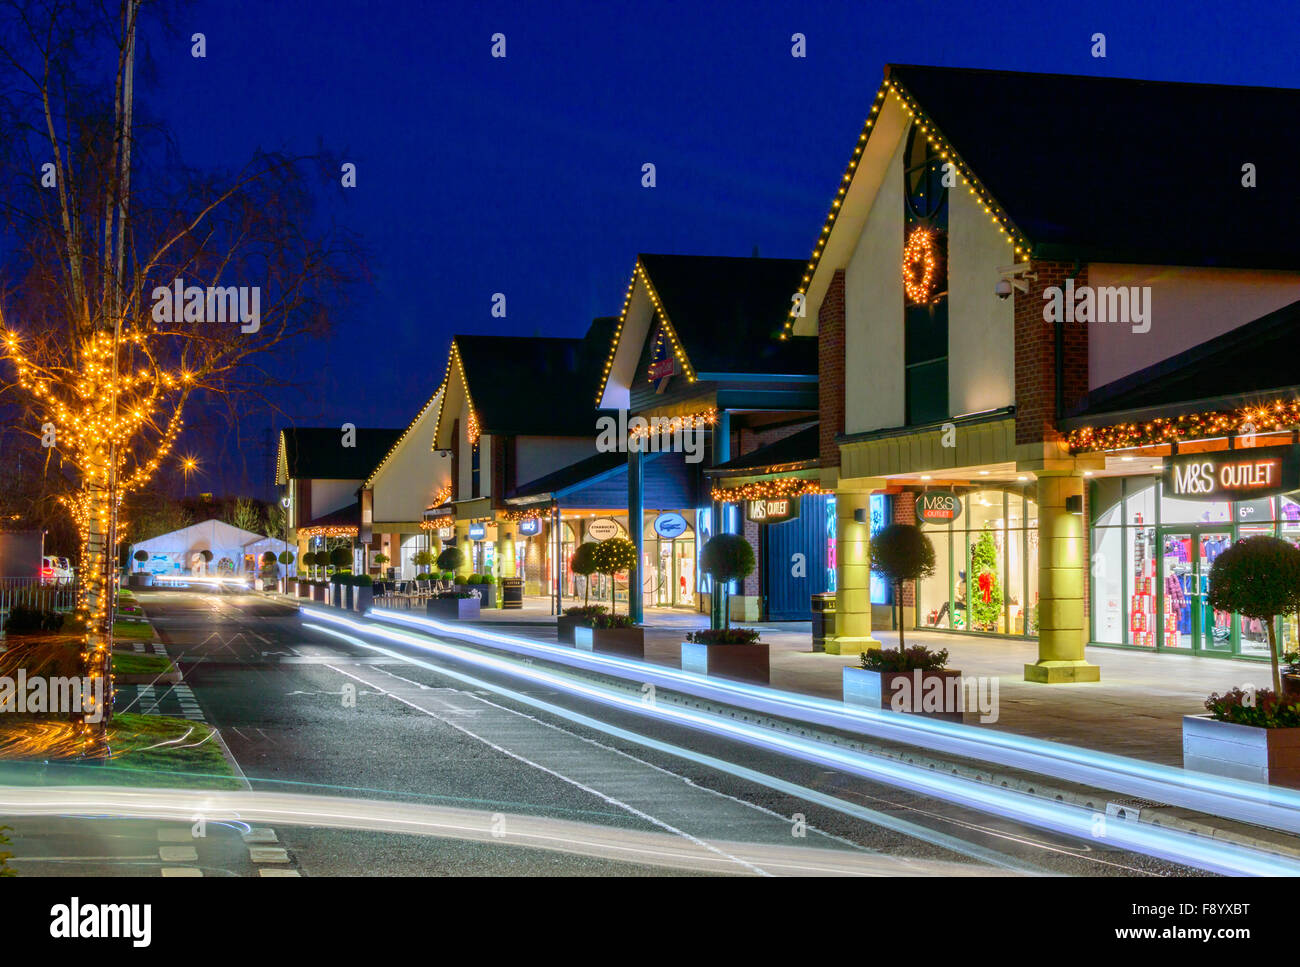 Various shops at East Midlands Designer Outlet (McArthur glen East Midlands). Stock Photo